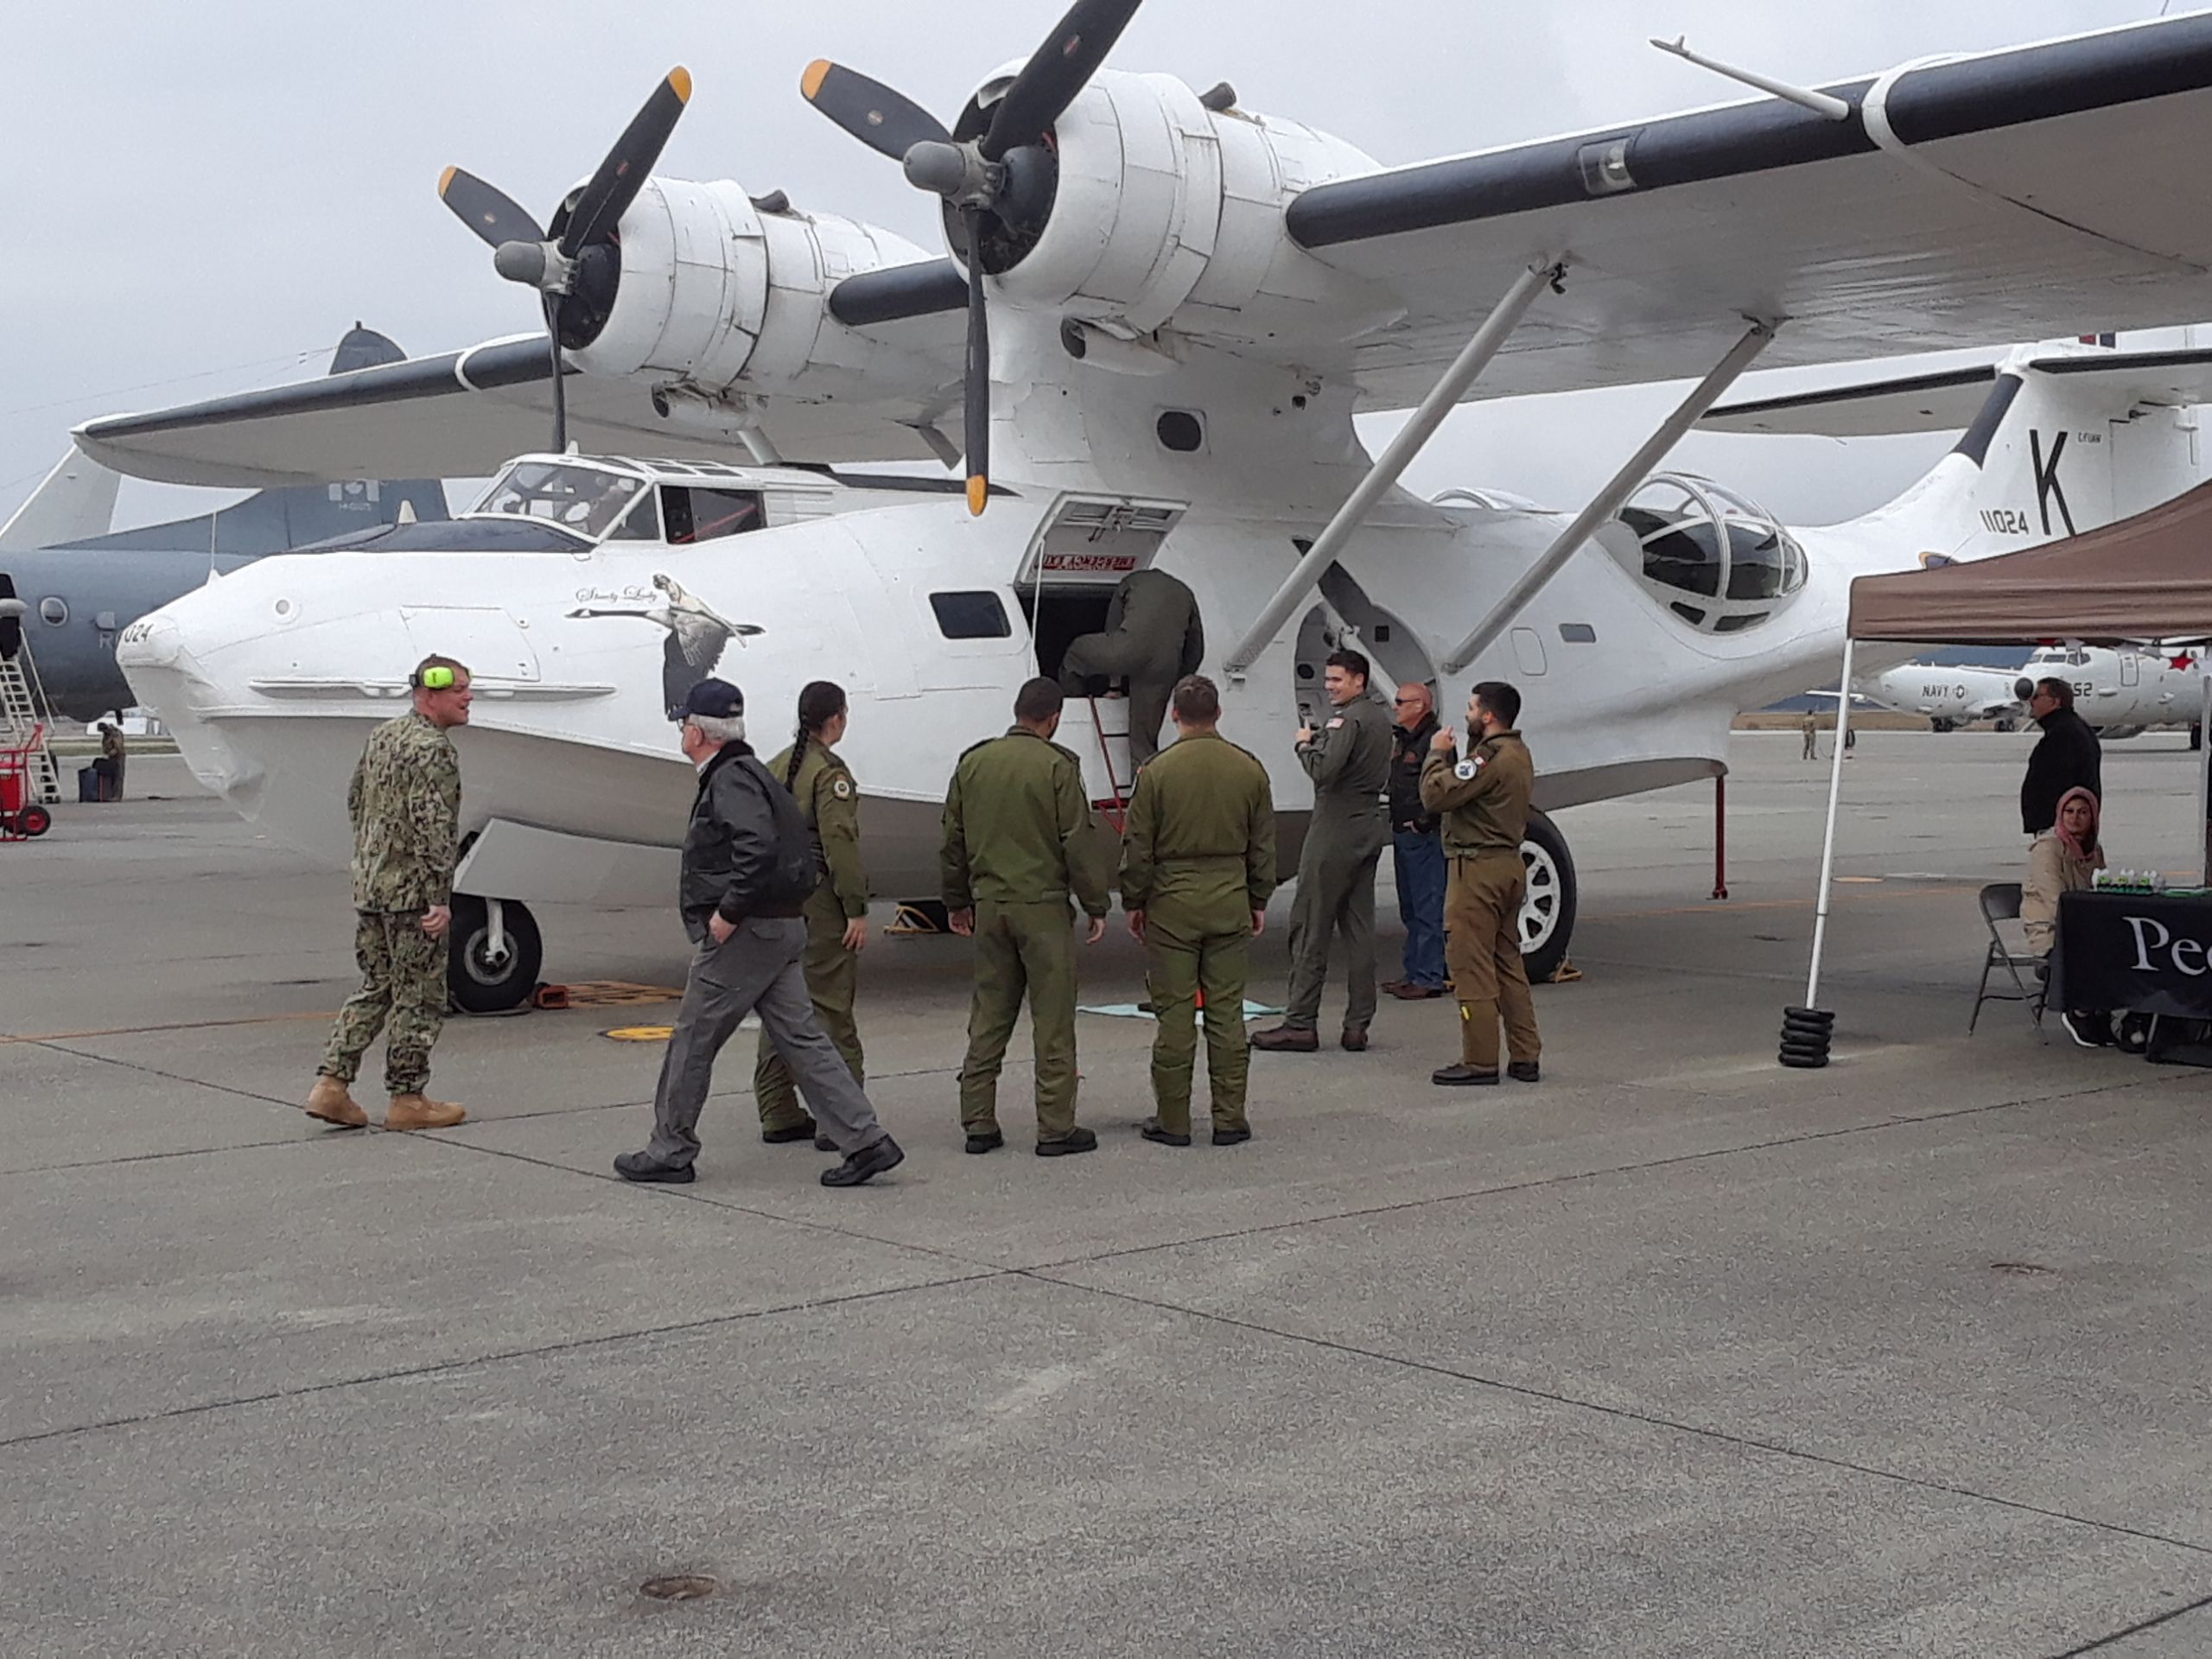 Visitors gathering around a PBY aircraft